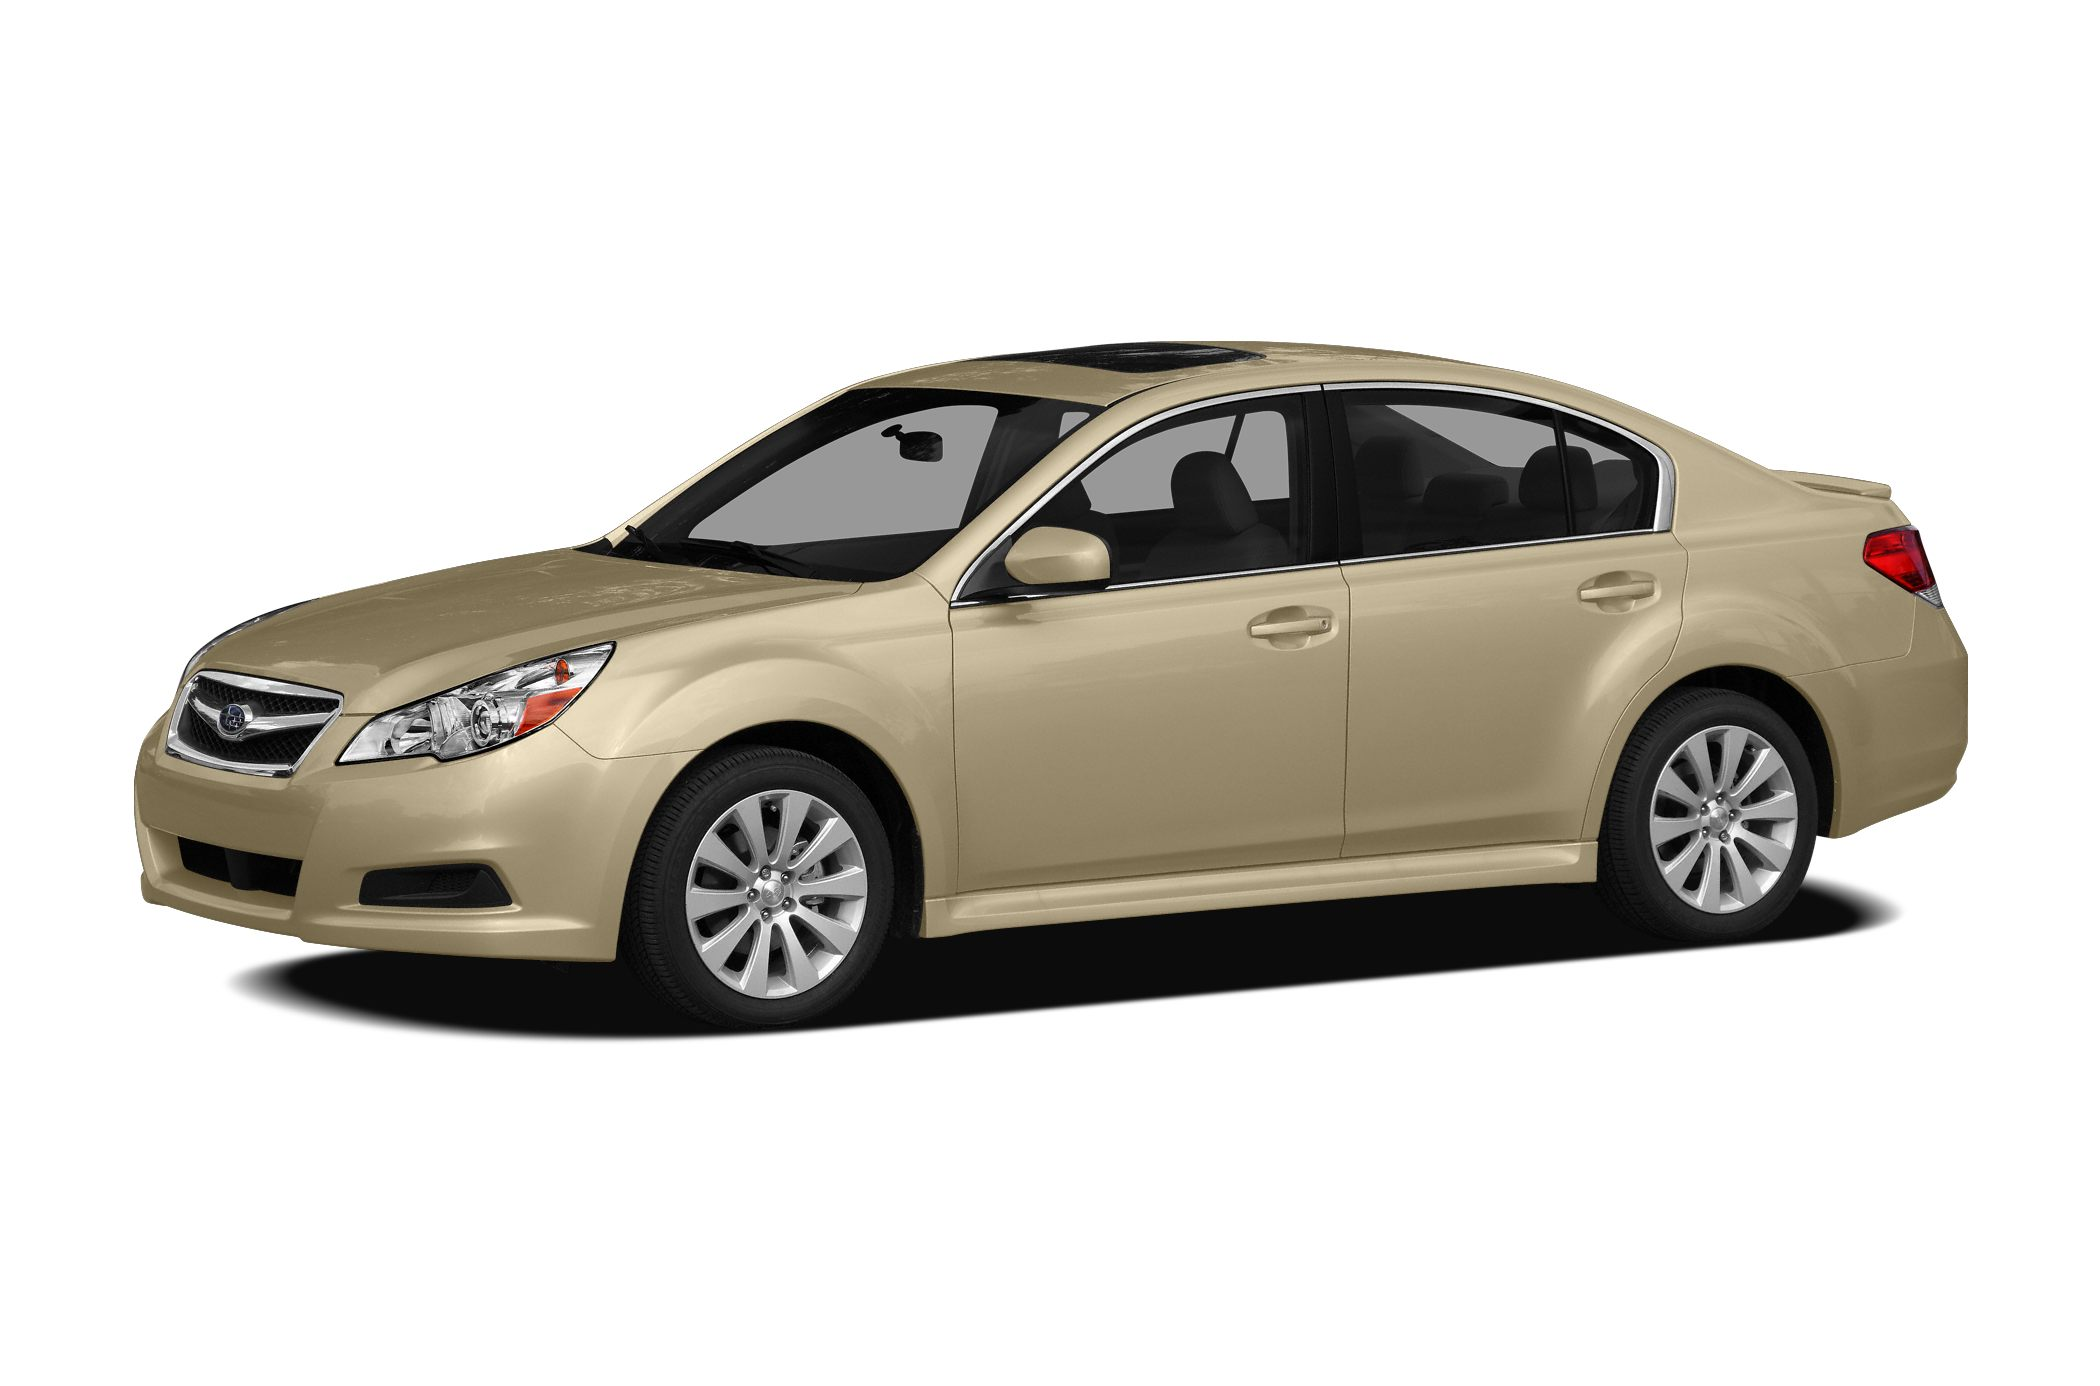 2010 Subaru Legacy 3.6 R Limited Sedan for sale in Tunnelton for $12,995 with 131,393 miles.